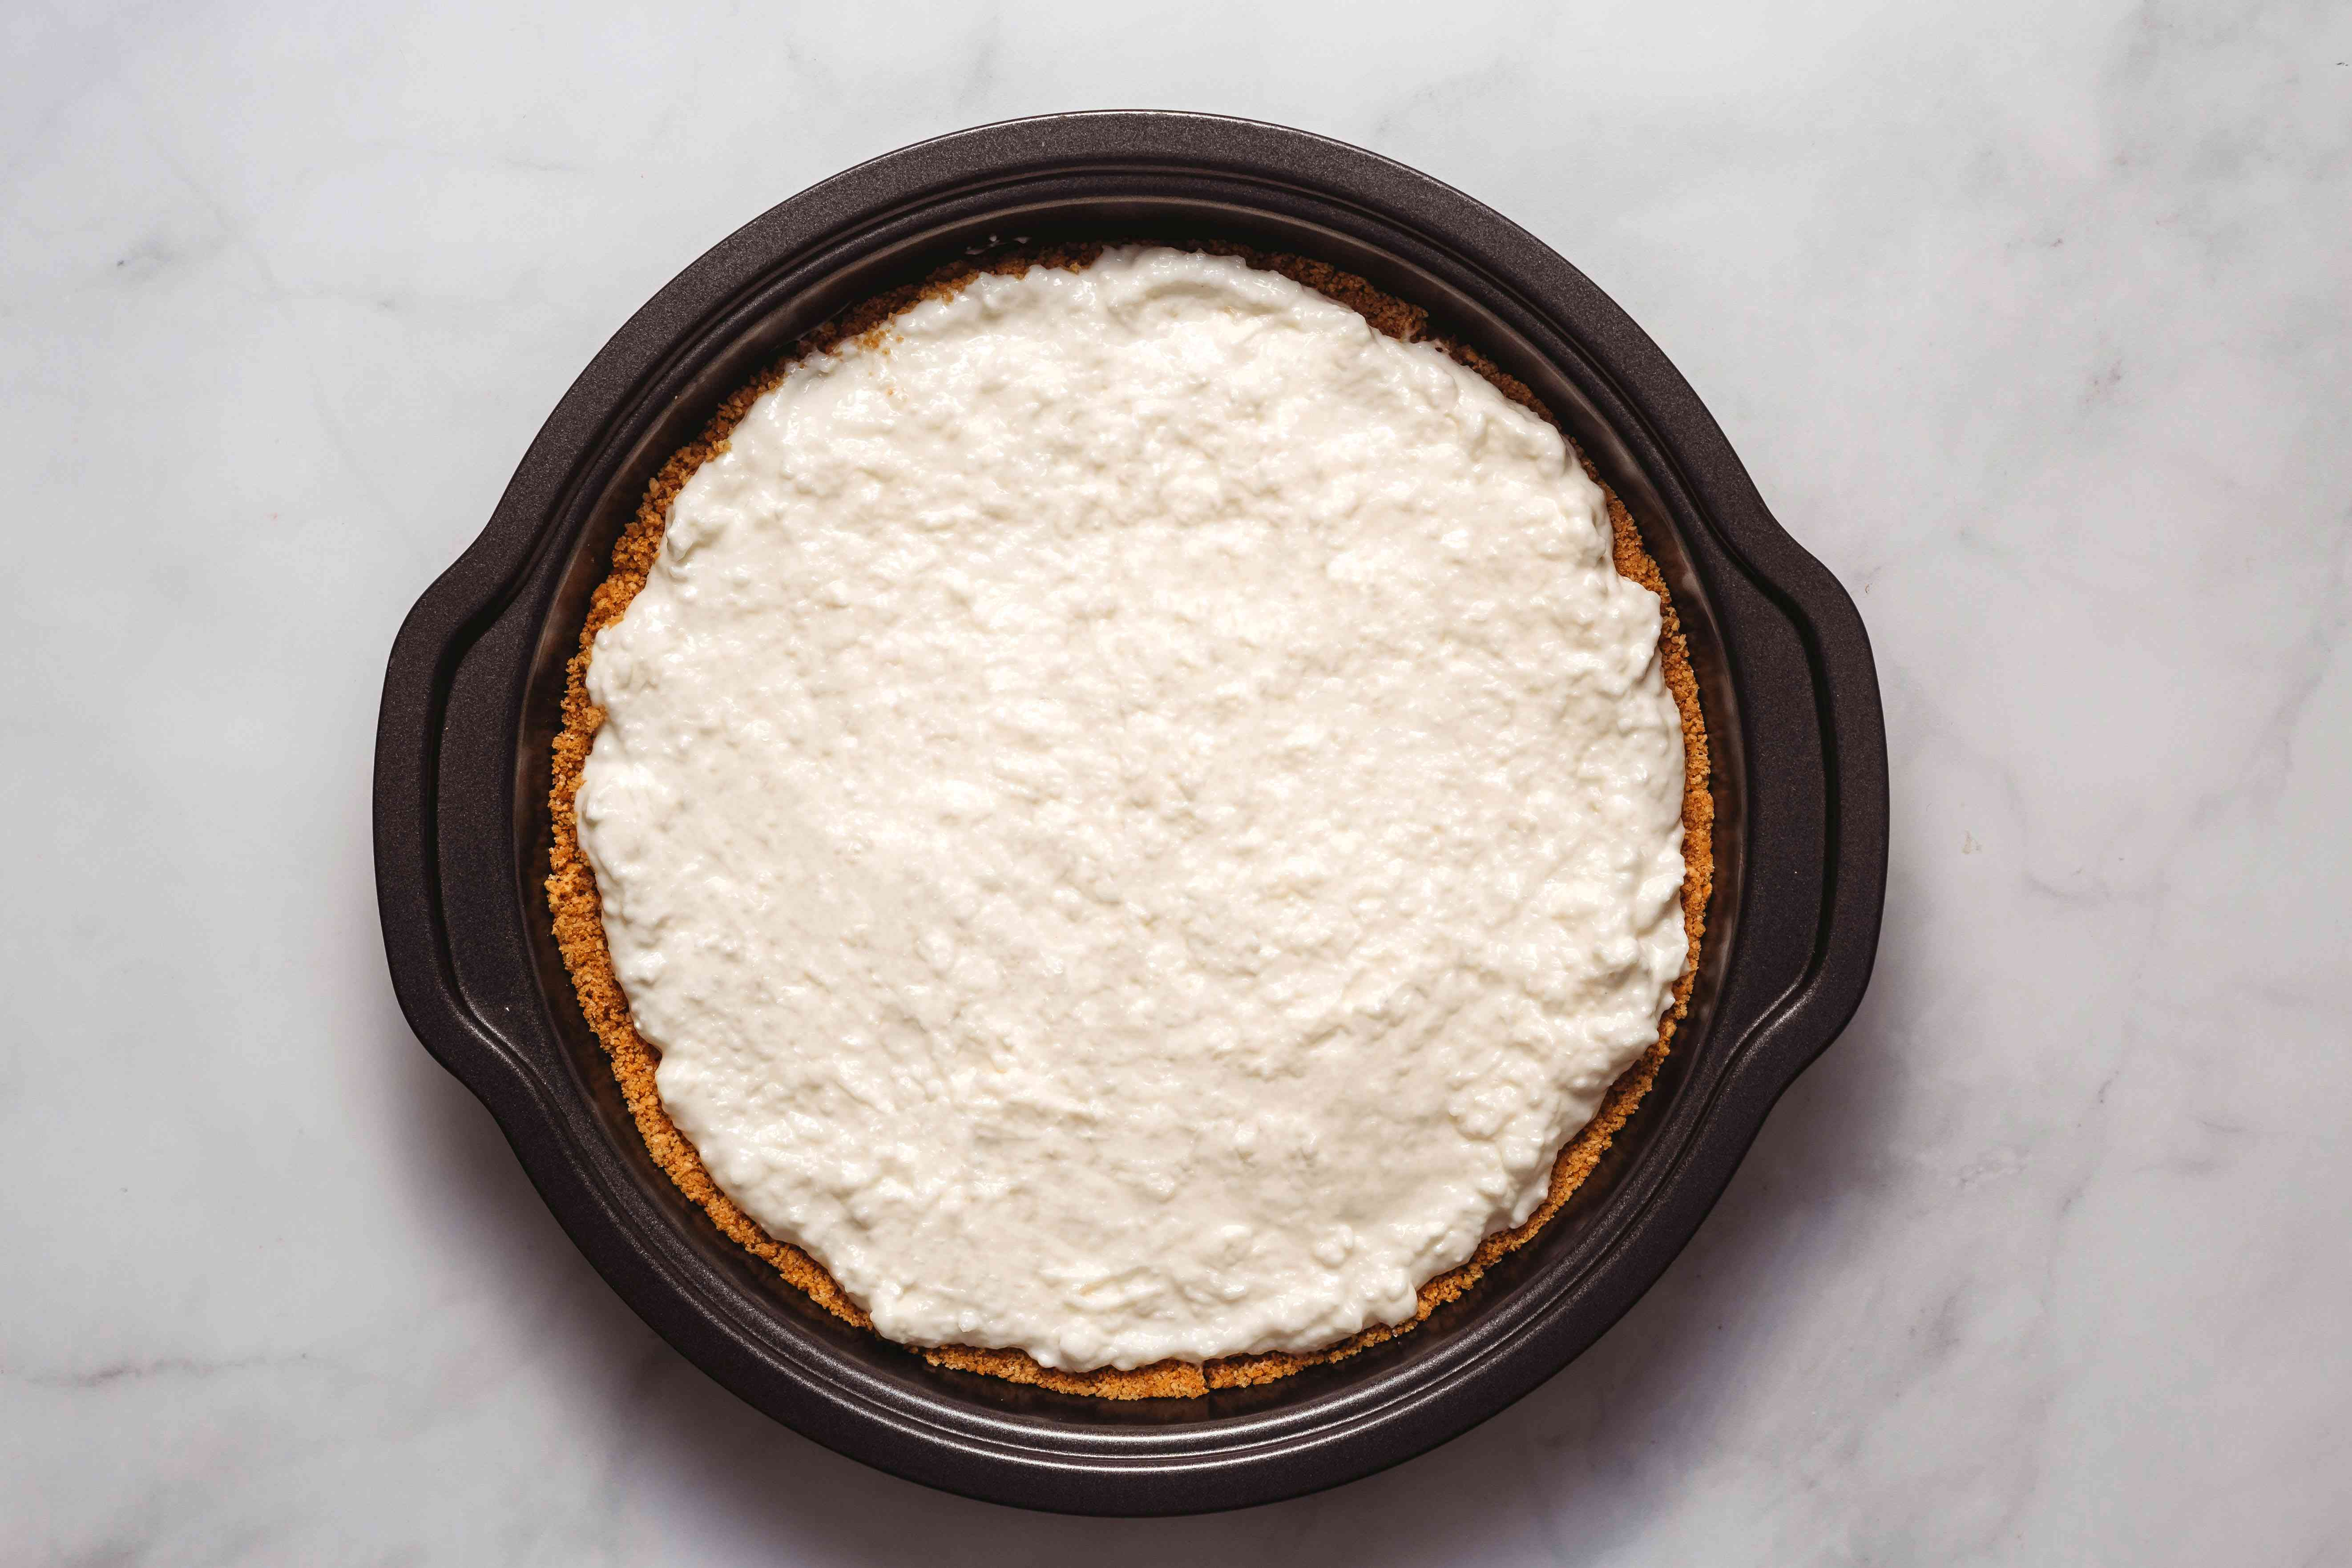 cream cheese filling on top of the crust in a cake pan